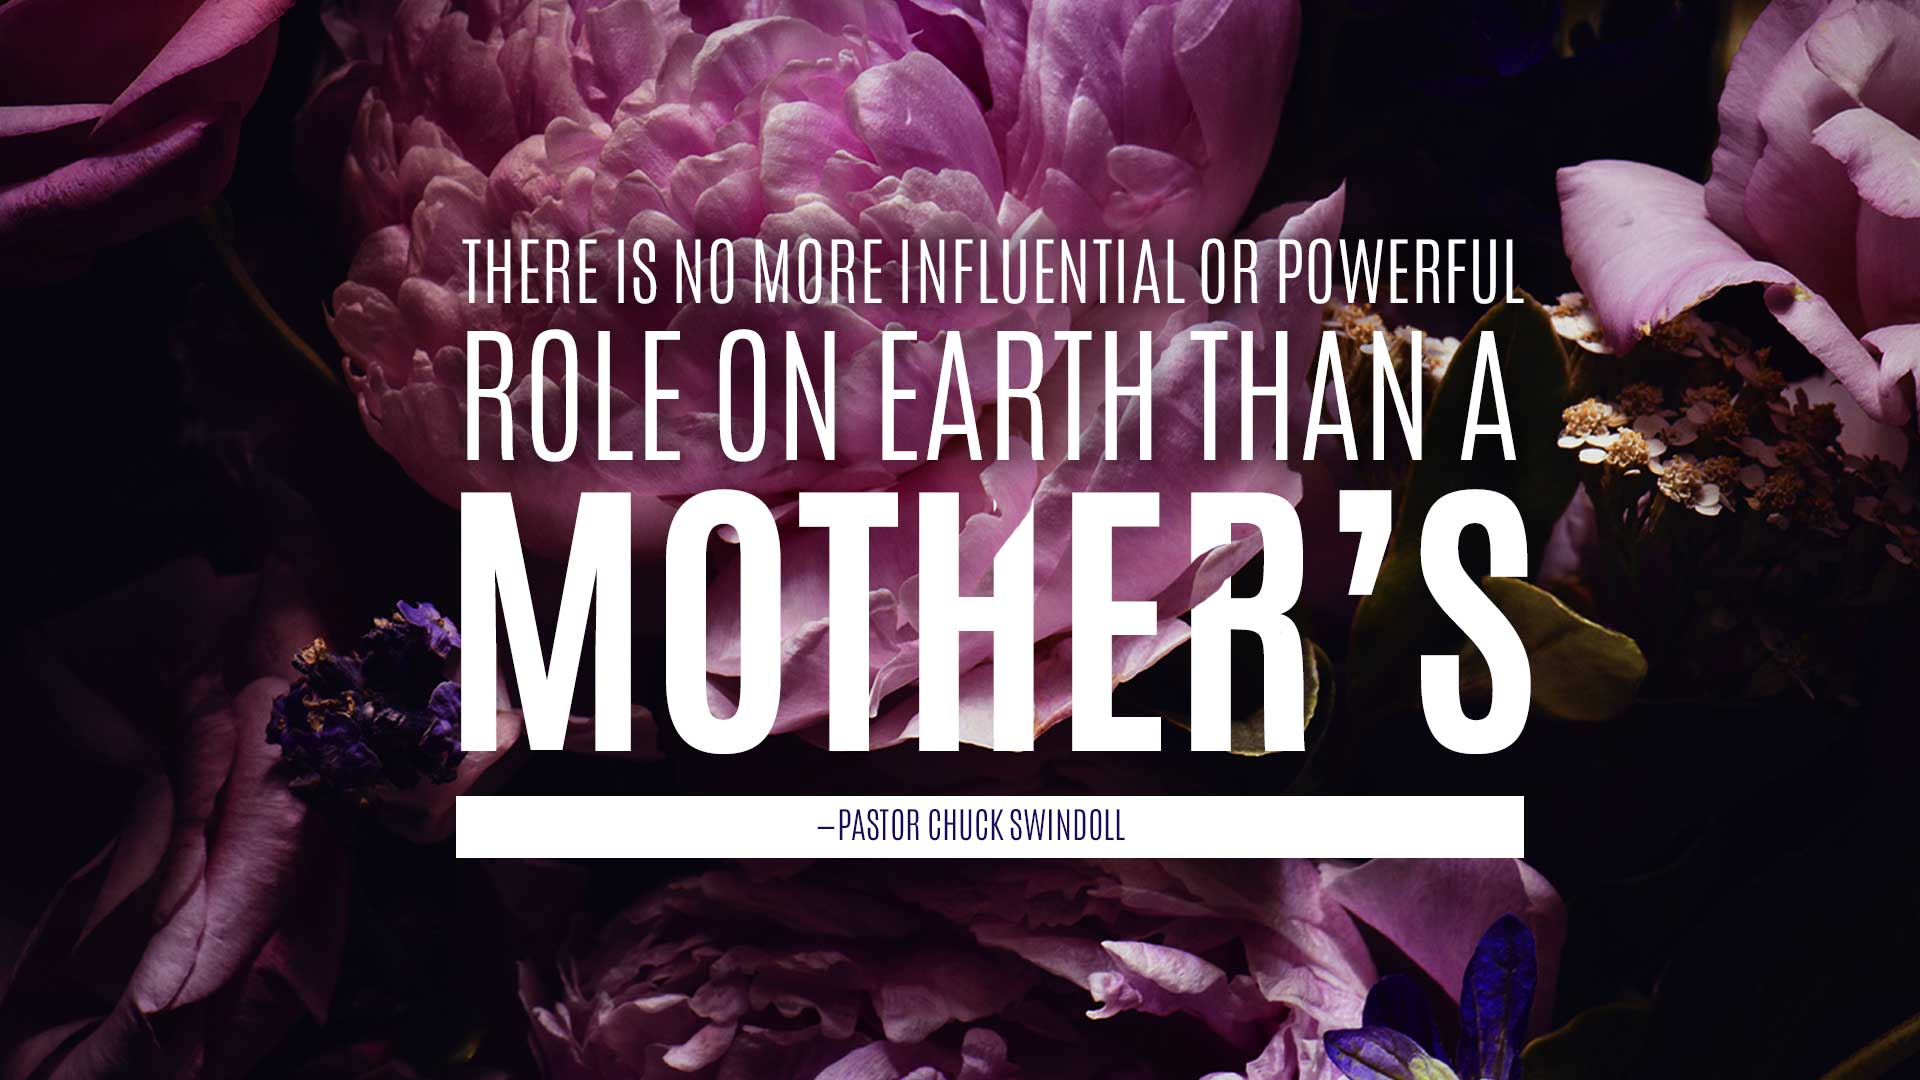 """quote: """"There is no more influential or powerful role on earth than a mother's."""" (Pastor Chuck Swindoll)"""